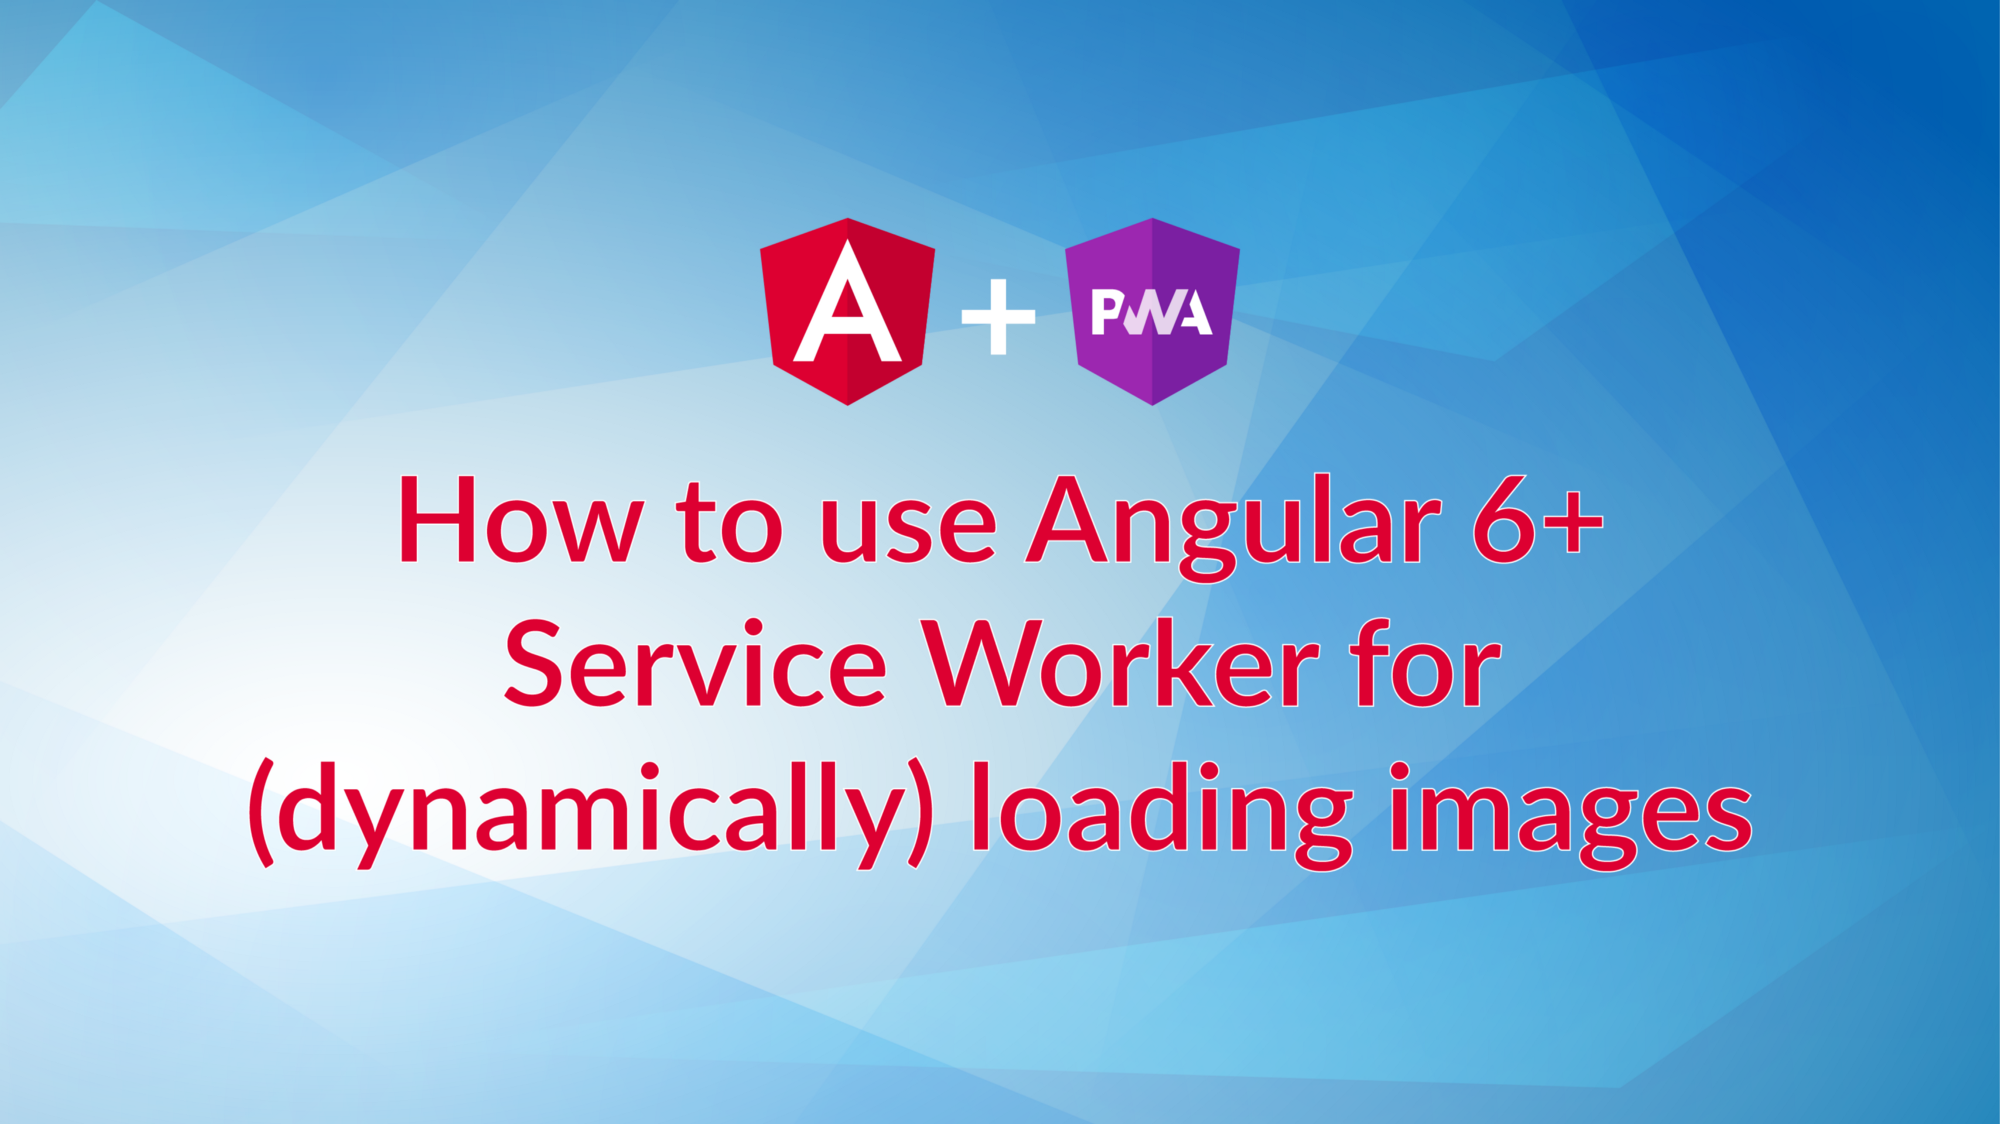 How to use Angular 6+ Service Worker for (dynamically) loading images